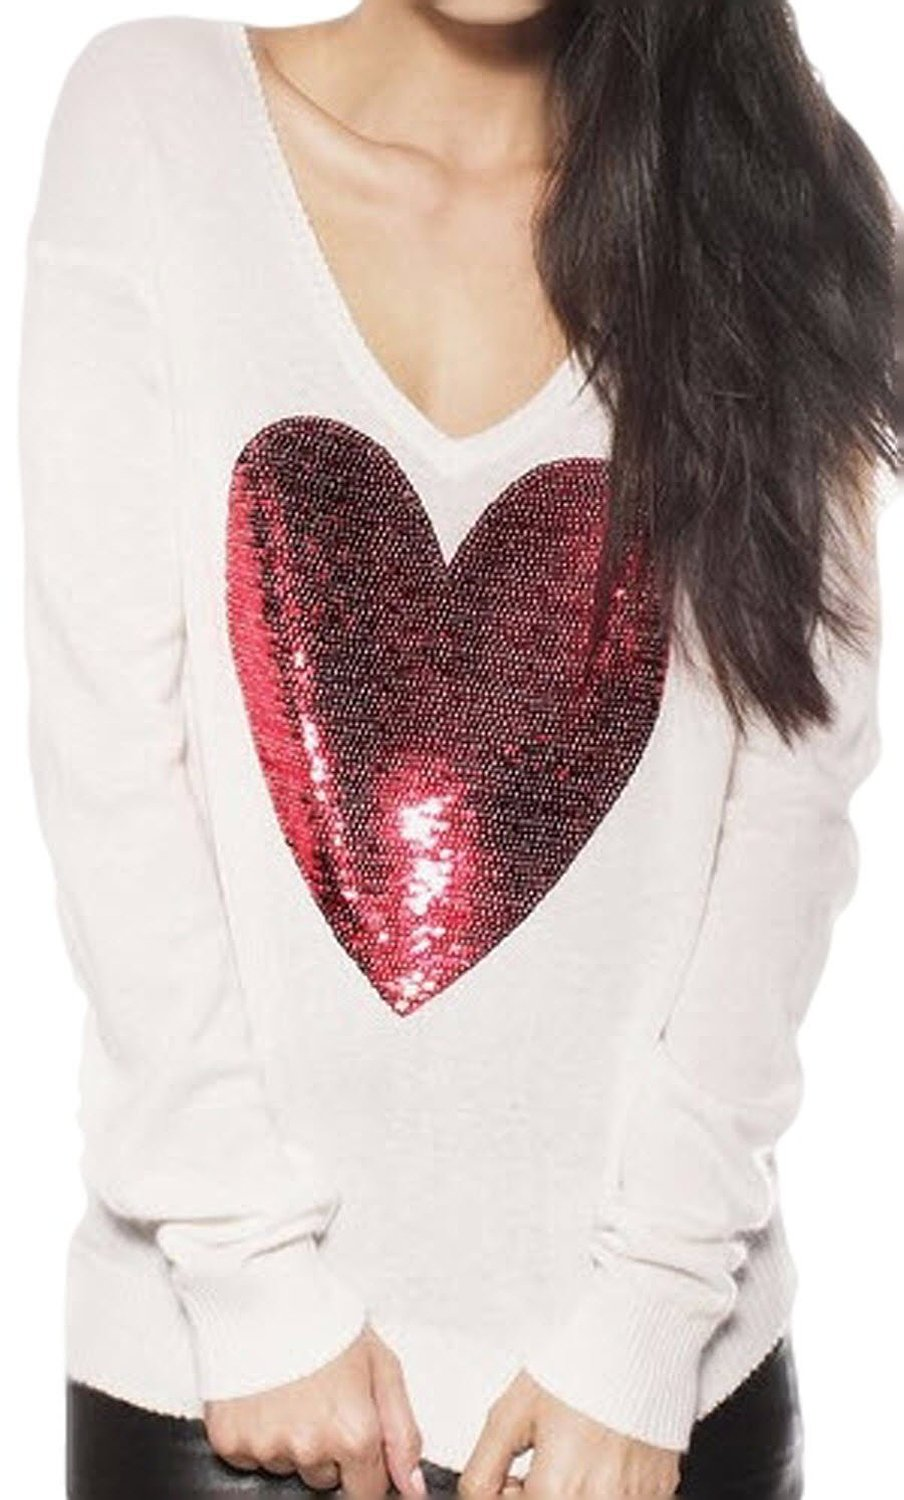 Skcute heart classic style knitting sweater white at amazon women's clothing store: